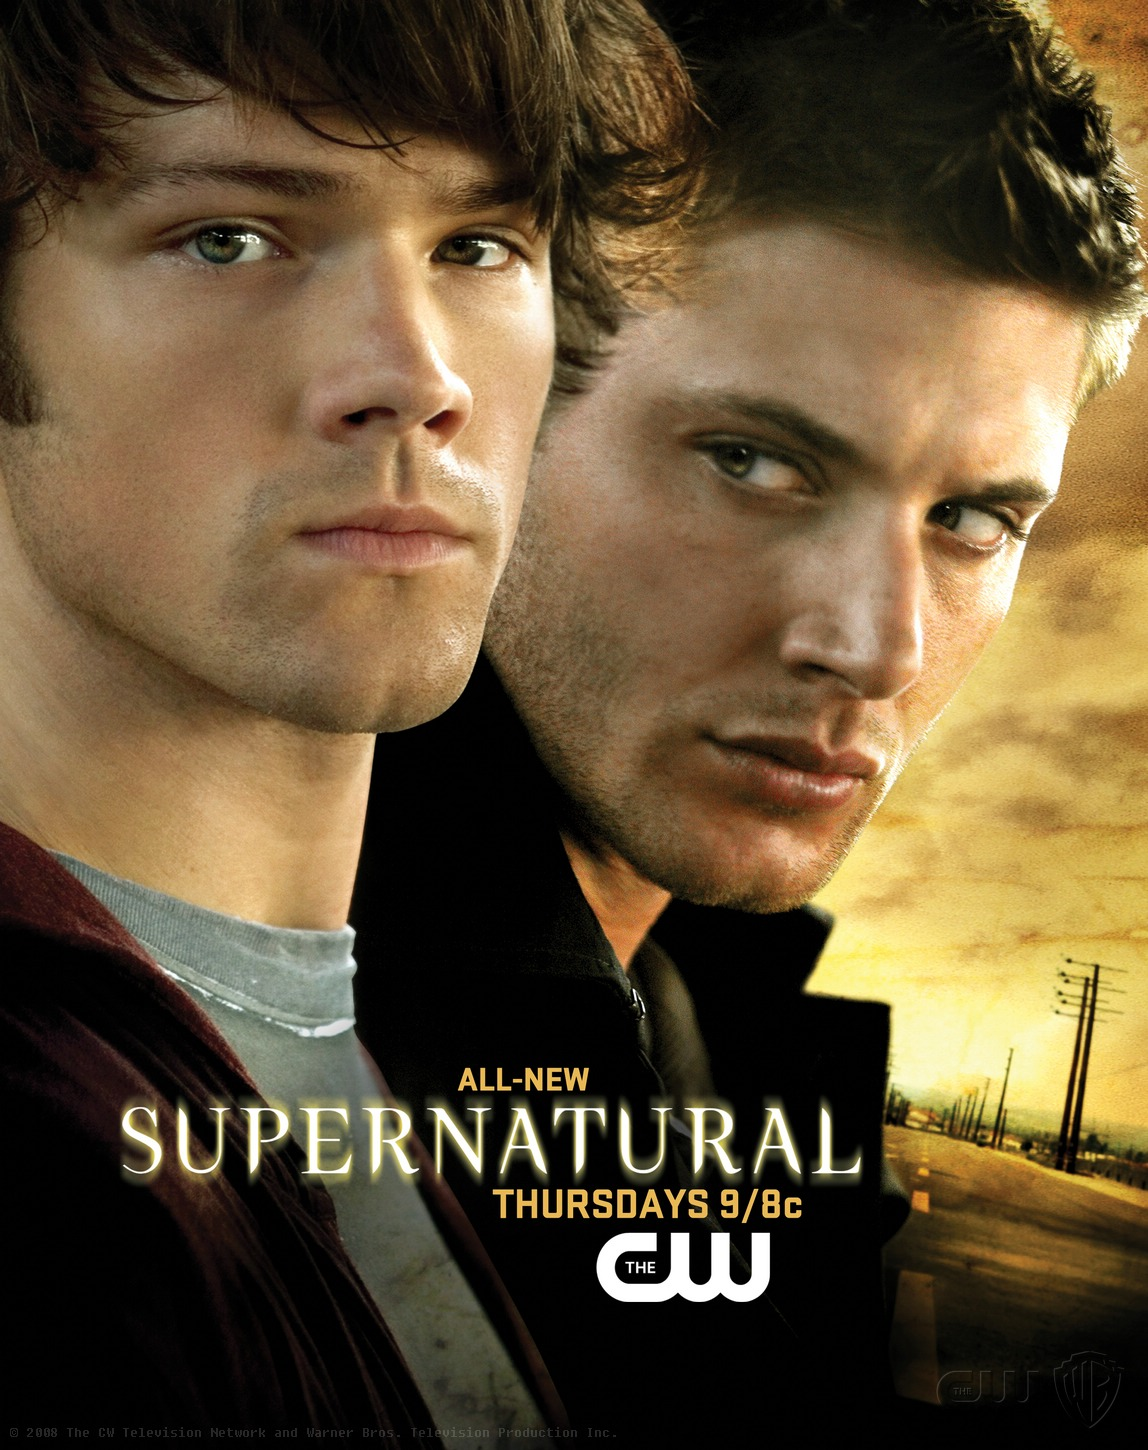 Supernatural - 1ª à 8ª Temporada Completas [AVI - HDTV - Legendado] - Torrent